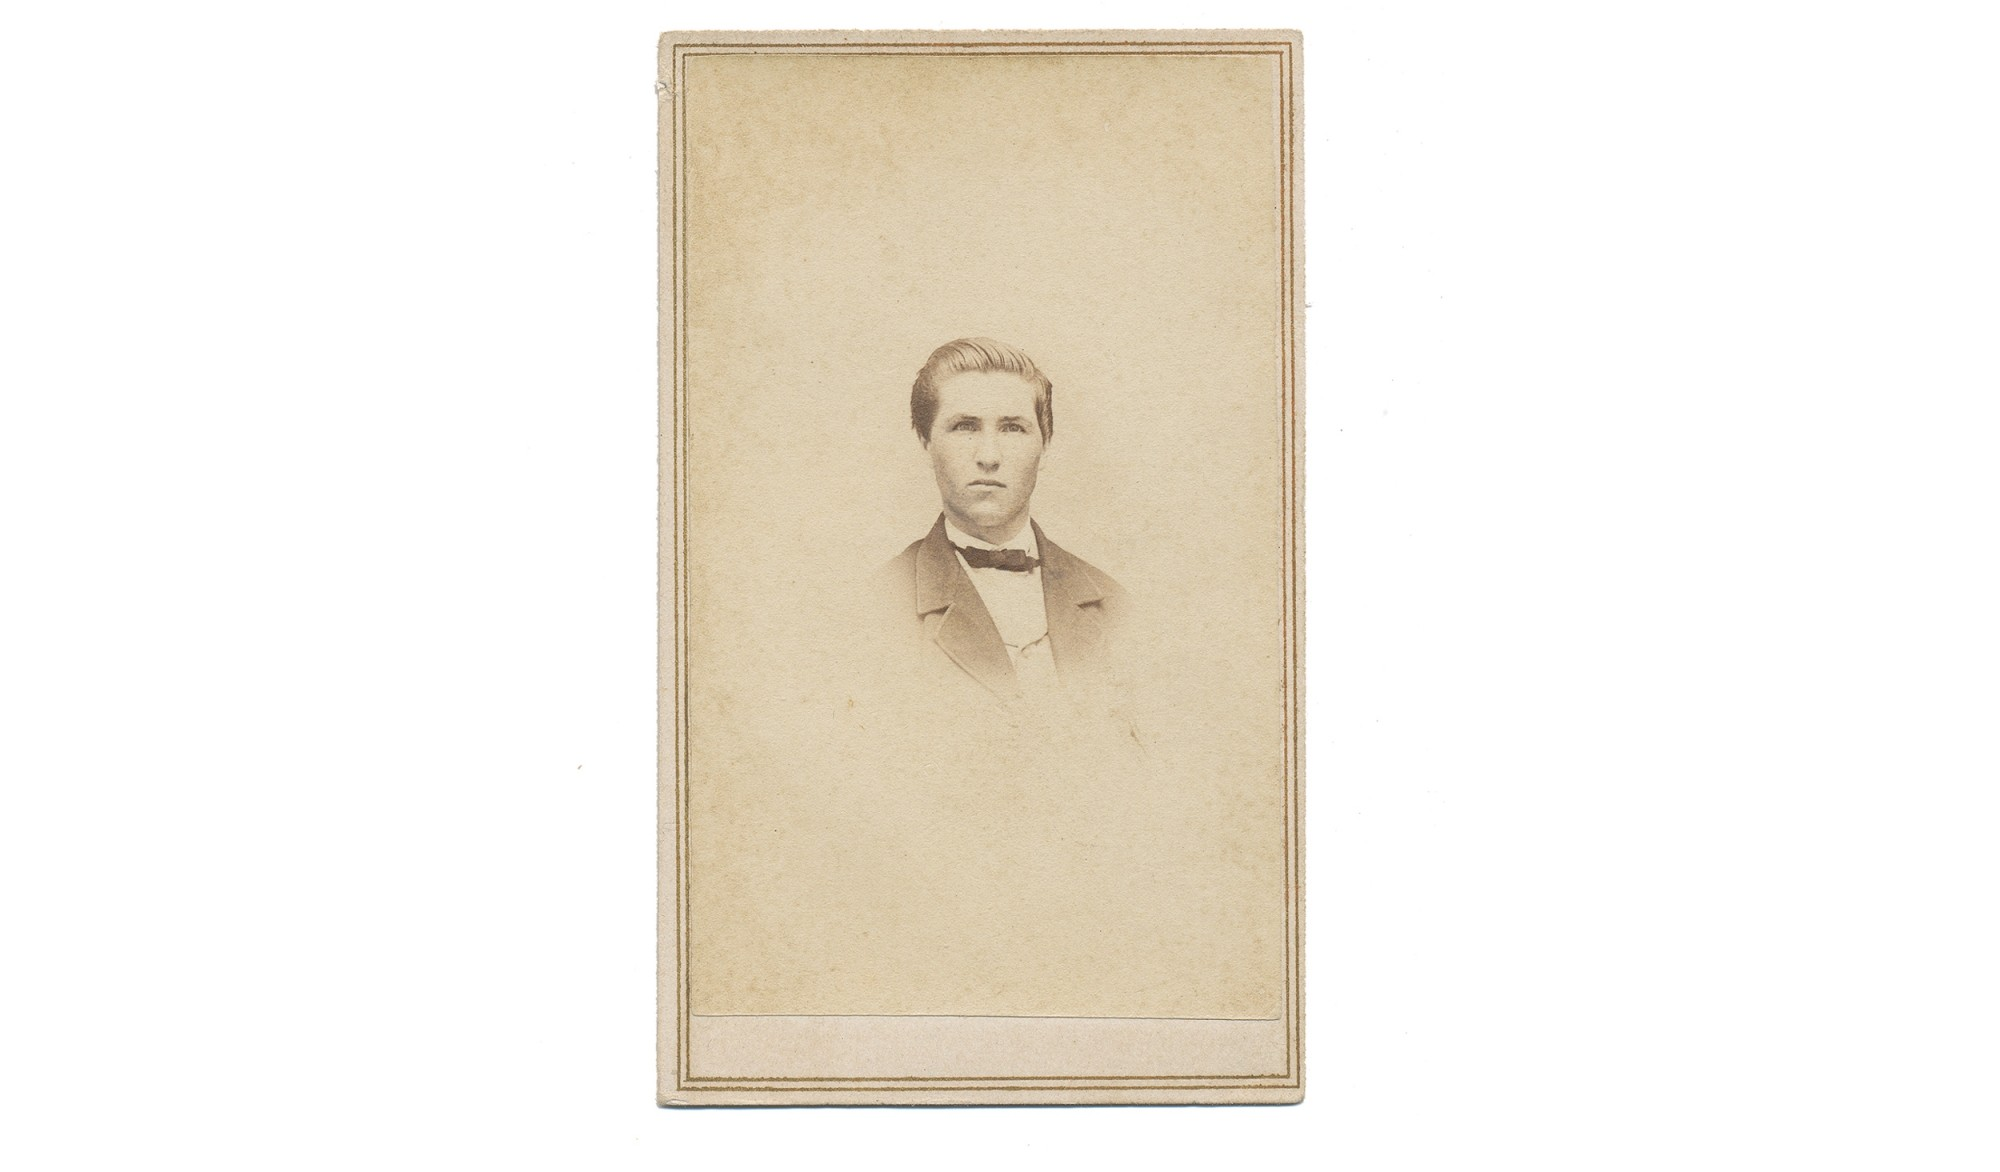 CDV OF ADAM WILKIN BEAKES, 124TH NEW YORK INFANTRY